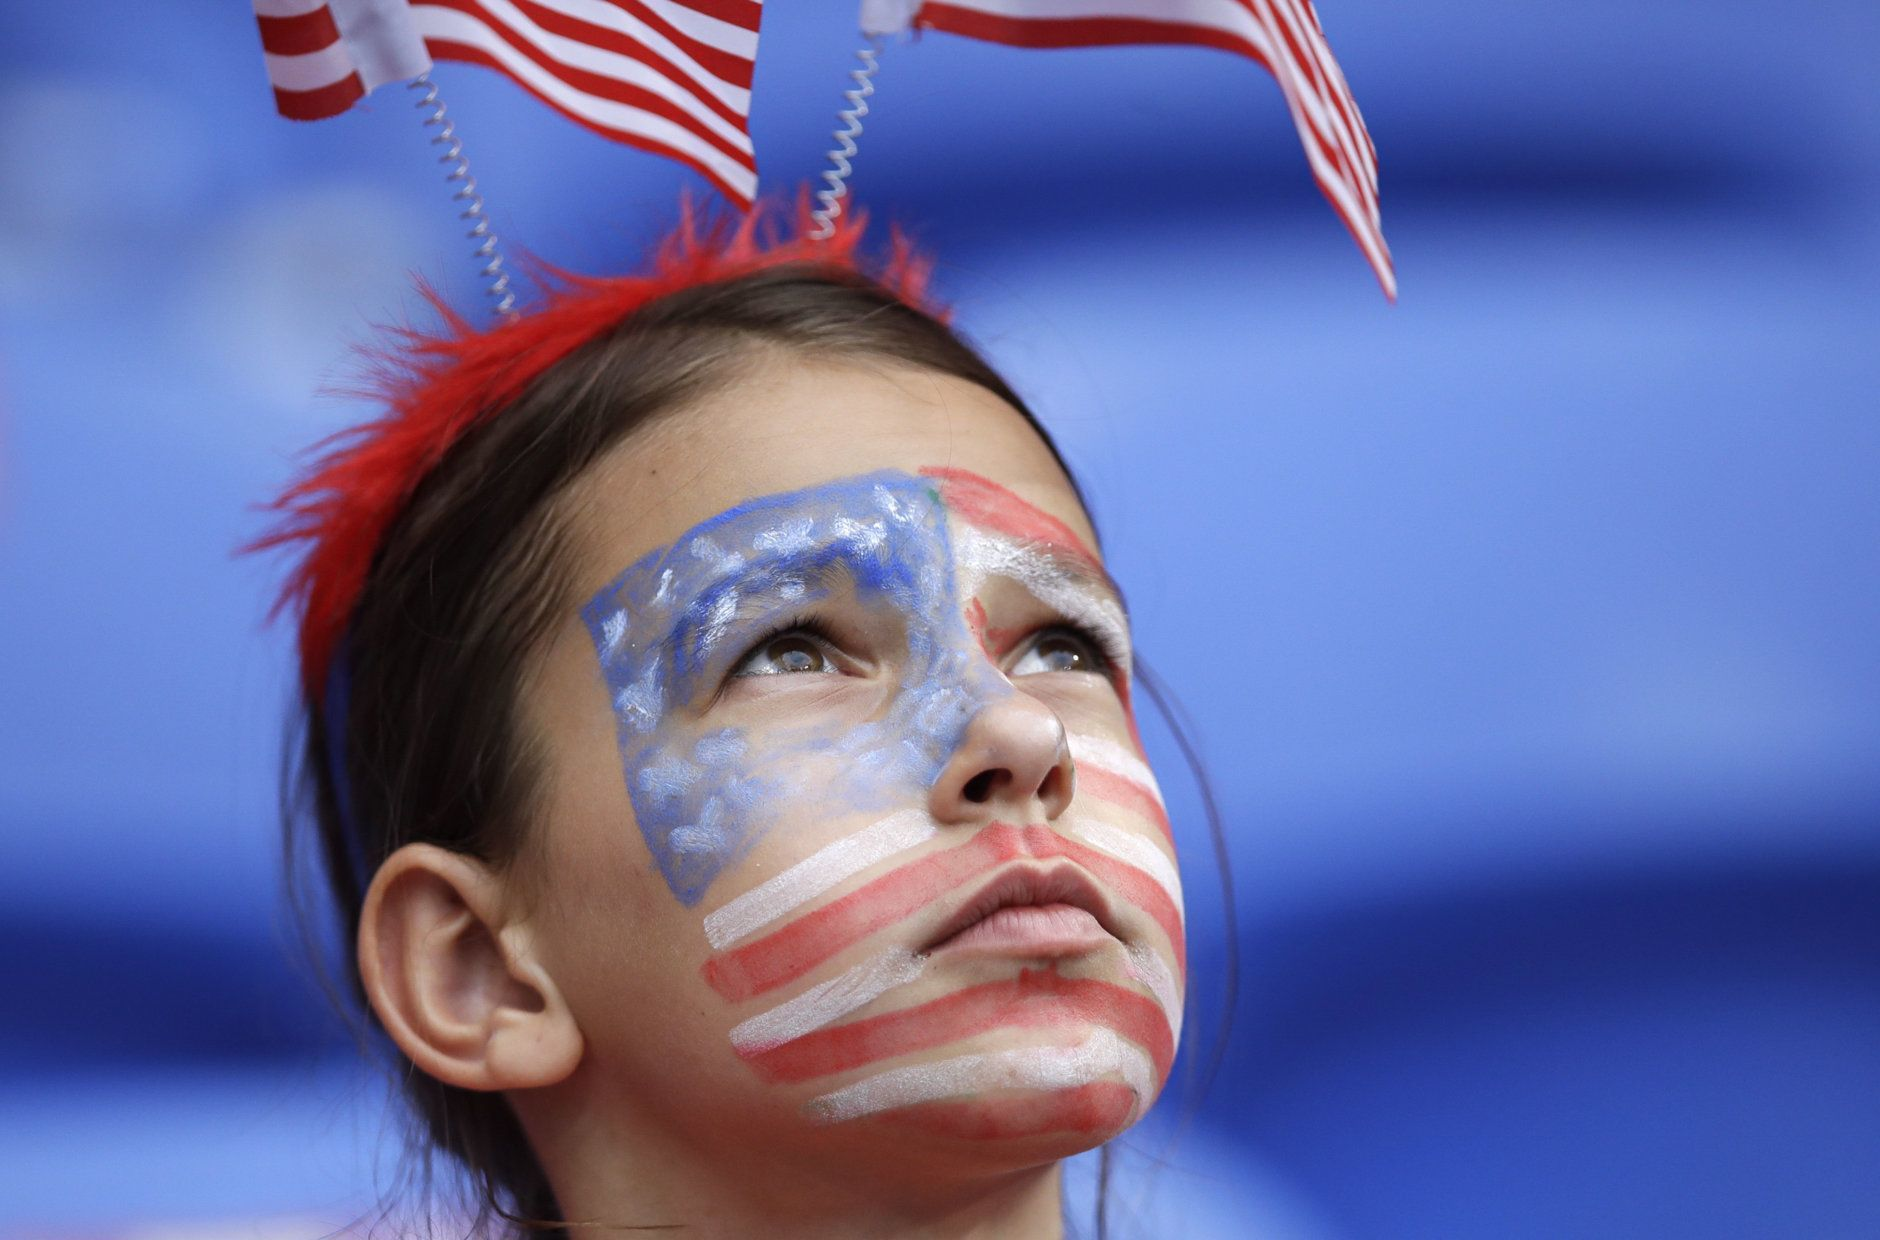 A United States fan with a painted face waits for the start of the Women's World Cup semifinal soccer match between England and the United States, at the Stade de Lyon outside Lyon, France, Tuesday, July 2, 2019. (AP Photo/Alessandra Tarantino)